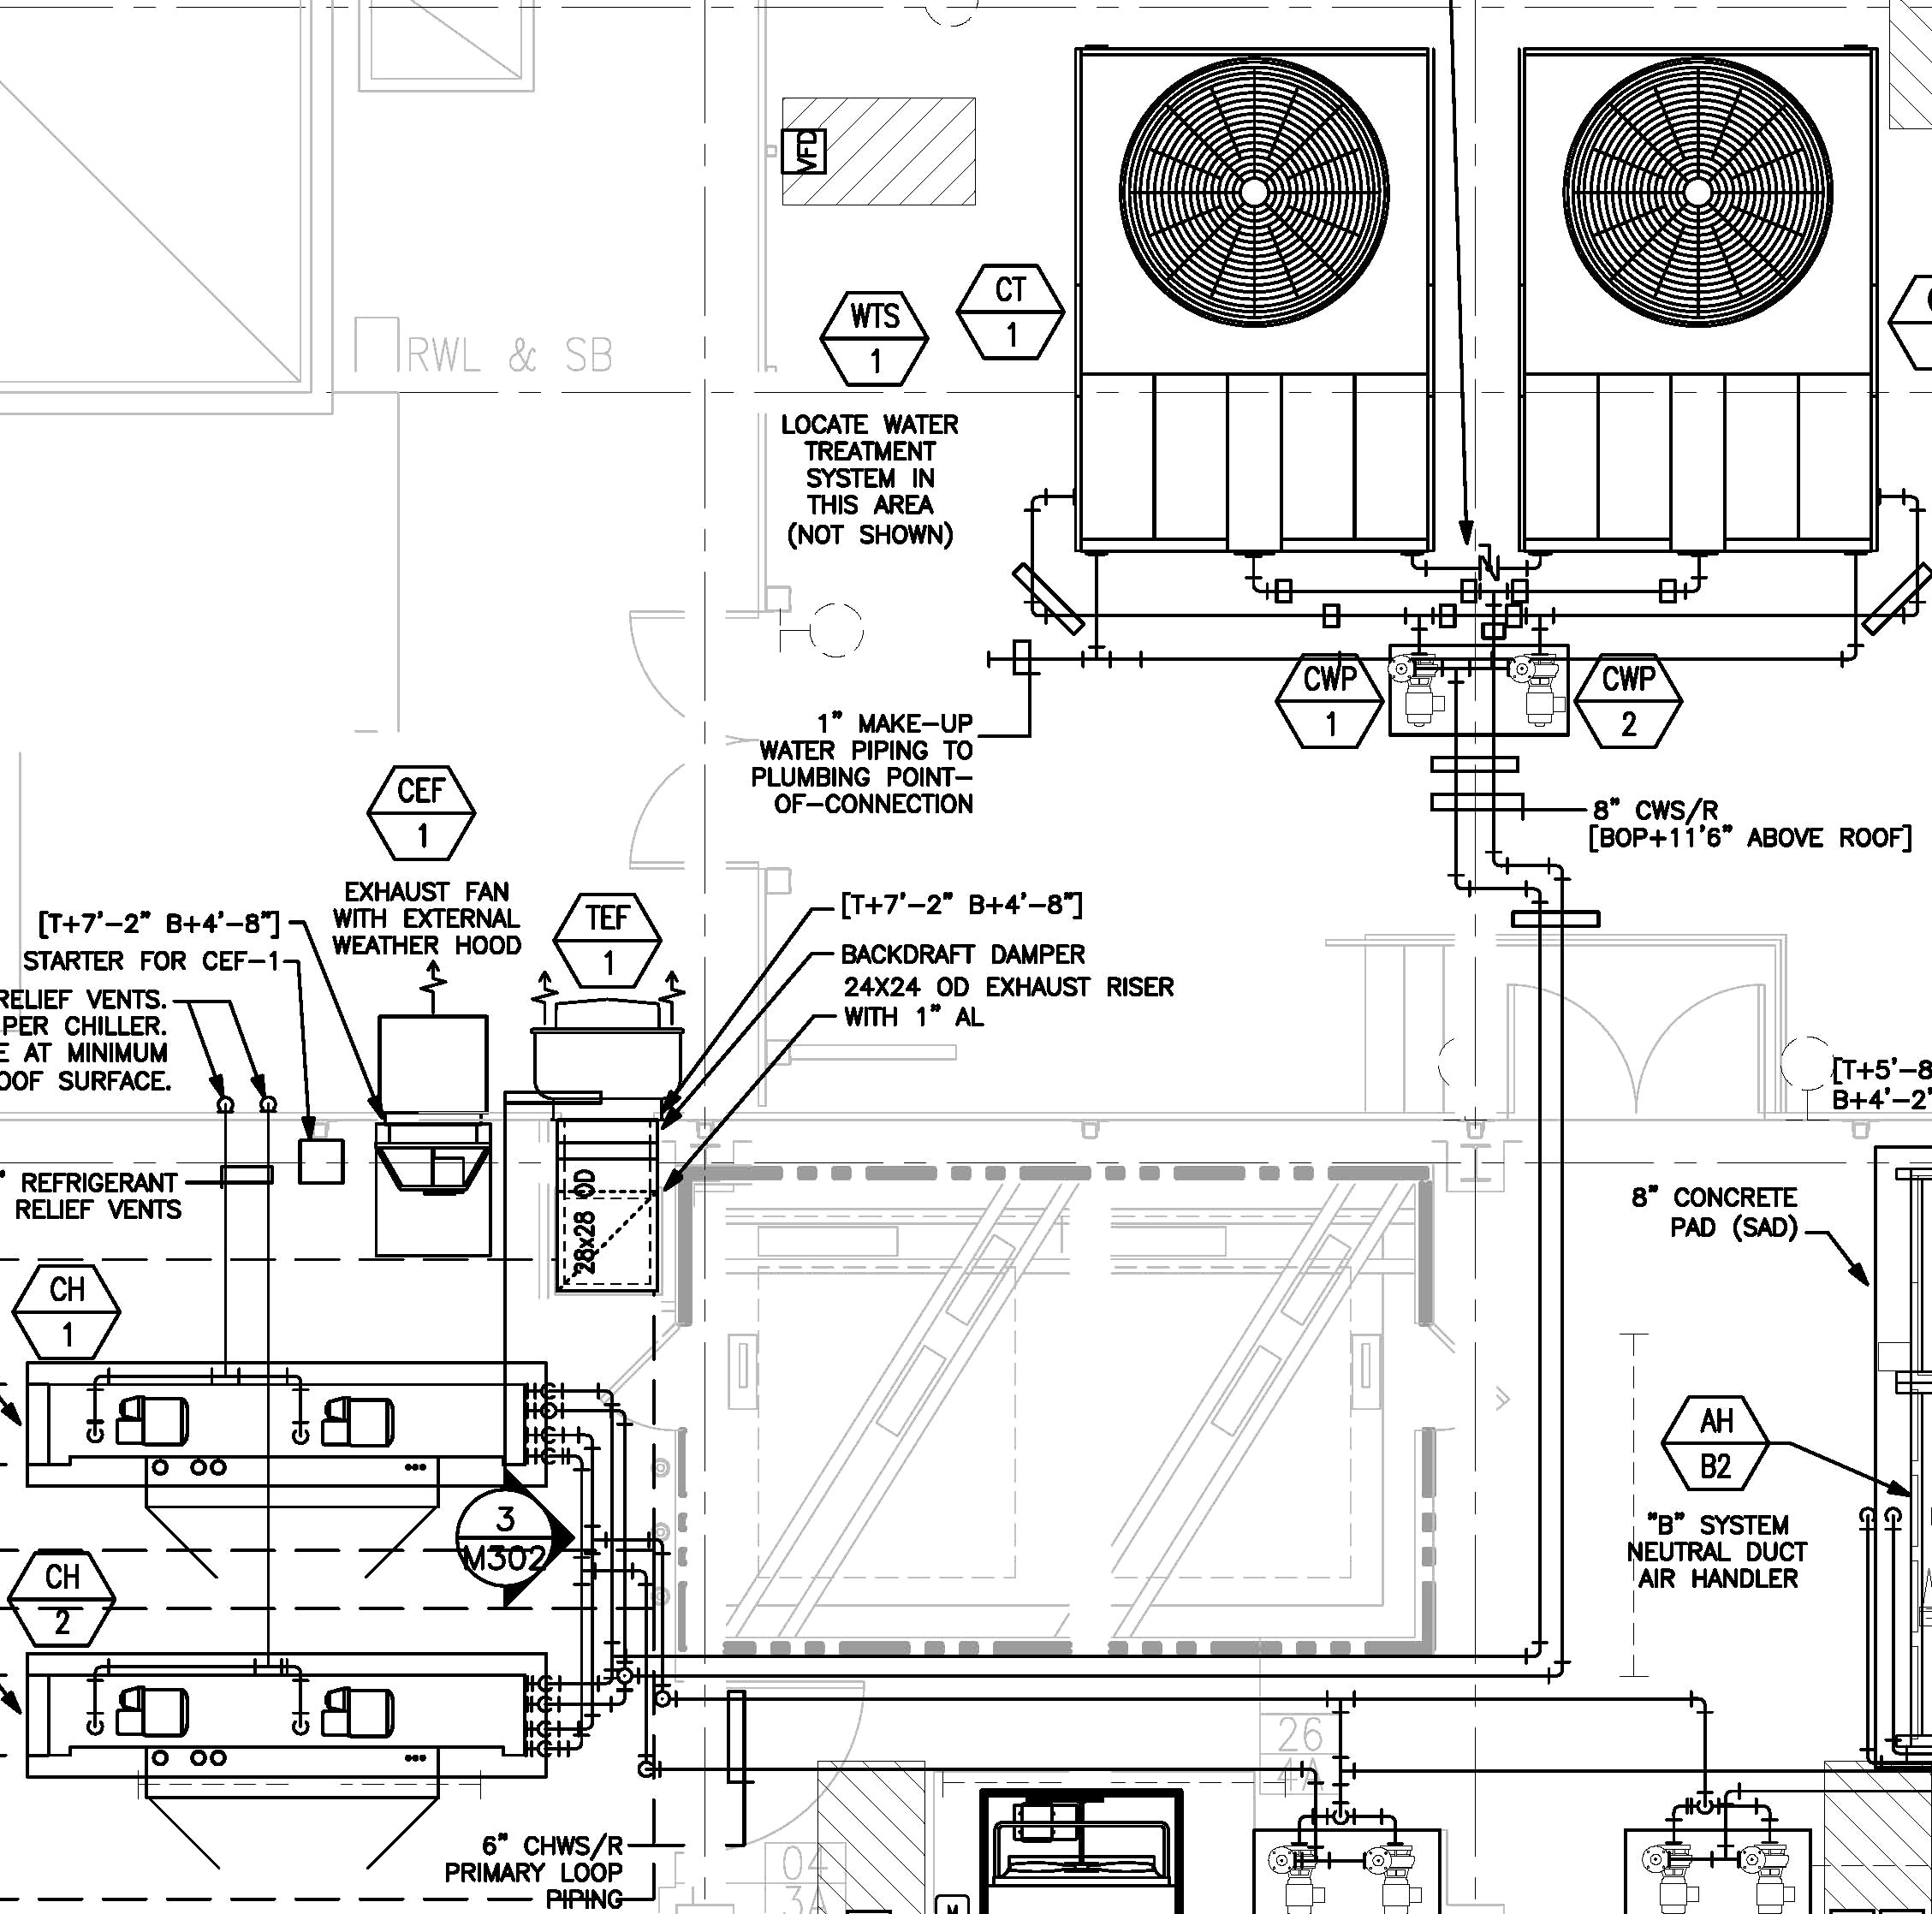 Car Fuel System Diagram Cooling System Diagram sources Of Car Fuel System Diagram